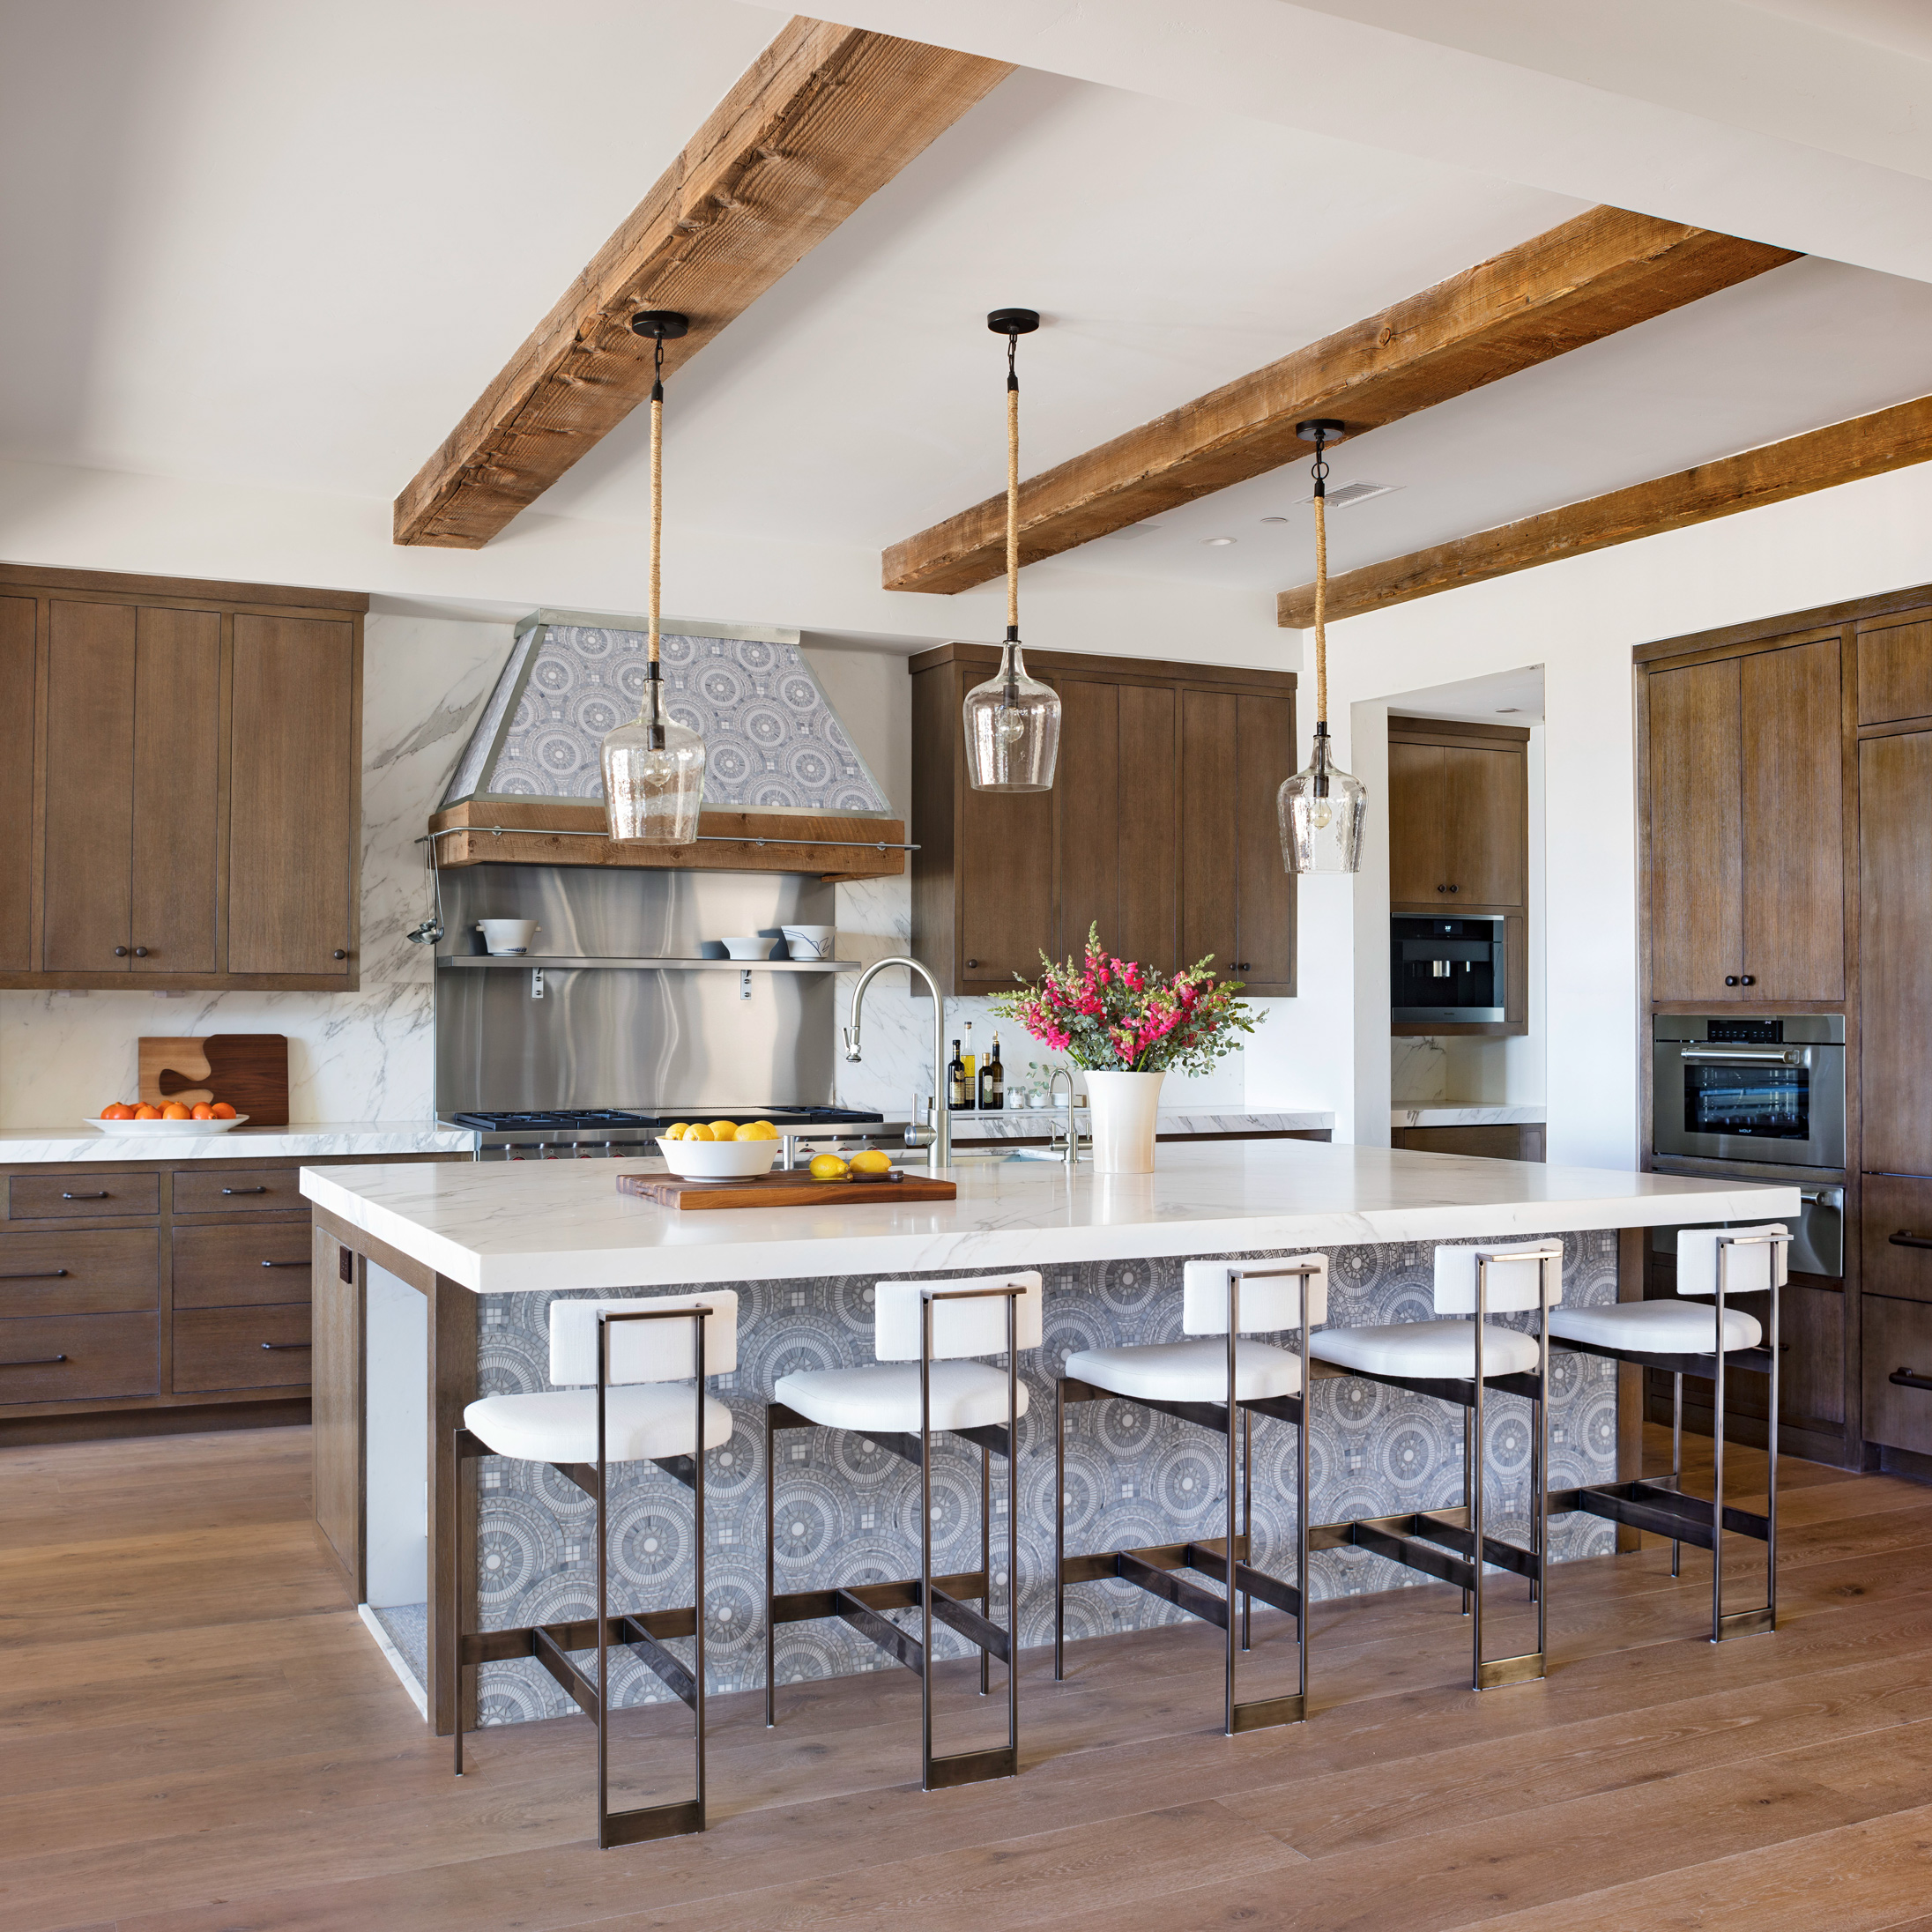 This Mediterranean Style Remodel Has All The Luxuries Of A